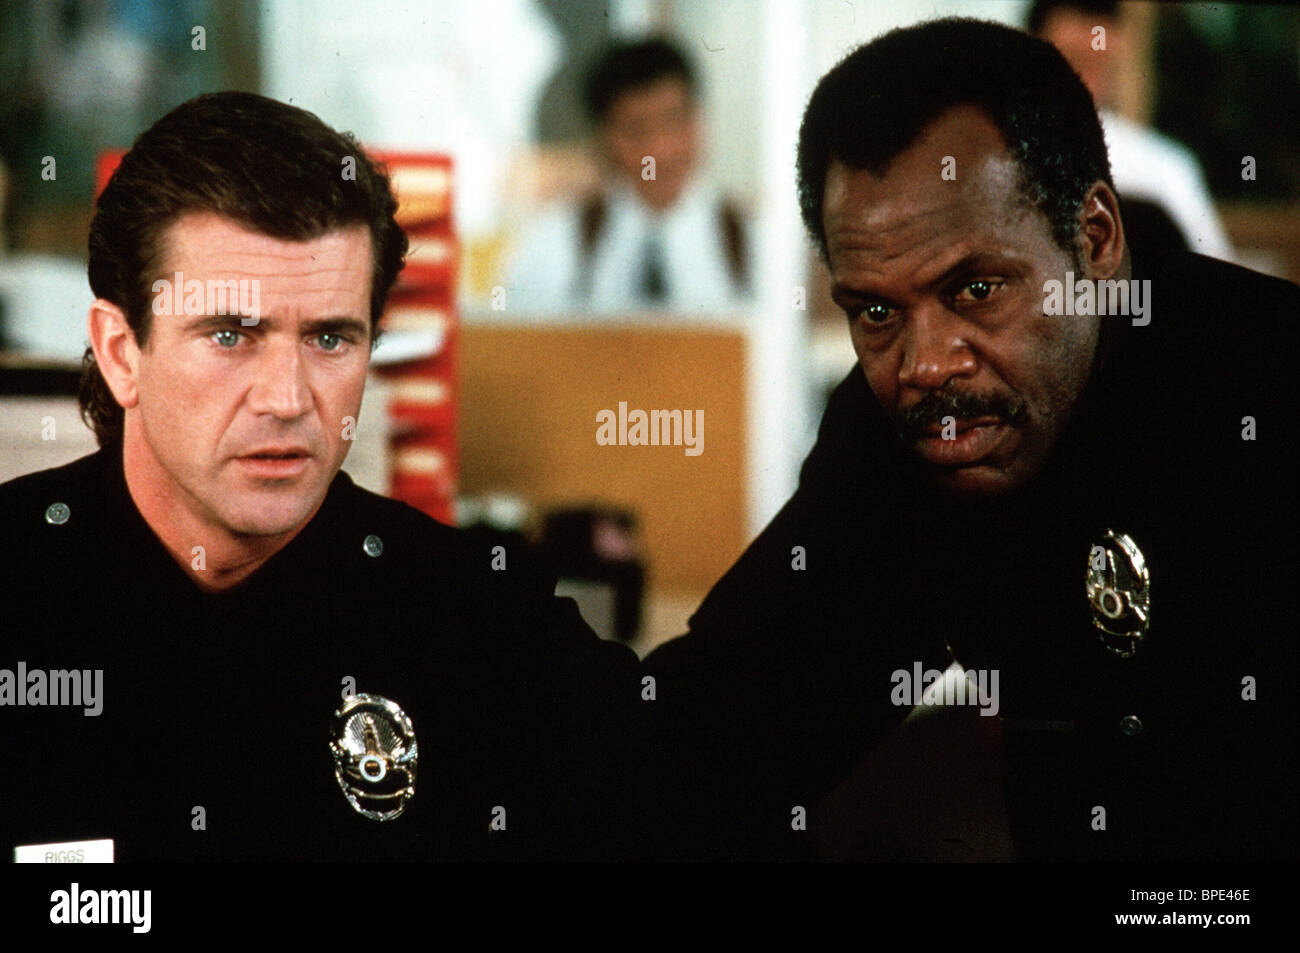 MEL GIBSON & DANNY GLOVER LETHAL WEAPON 3 (1992) - Stock Image